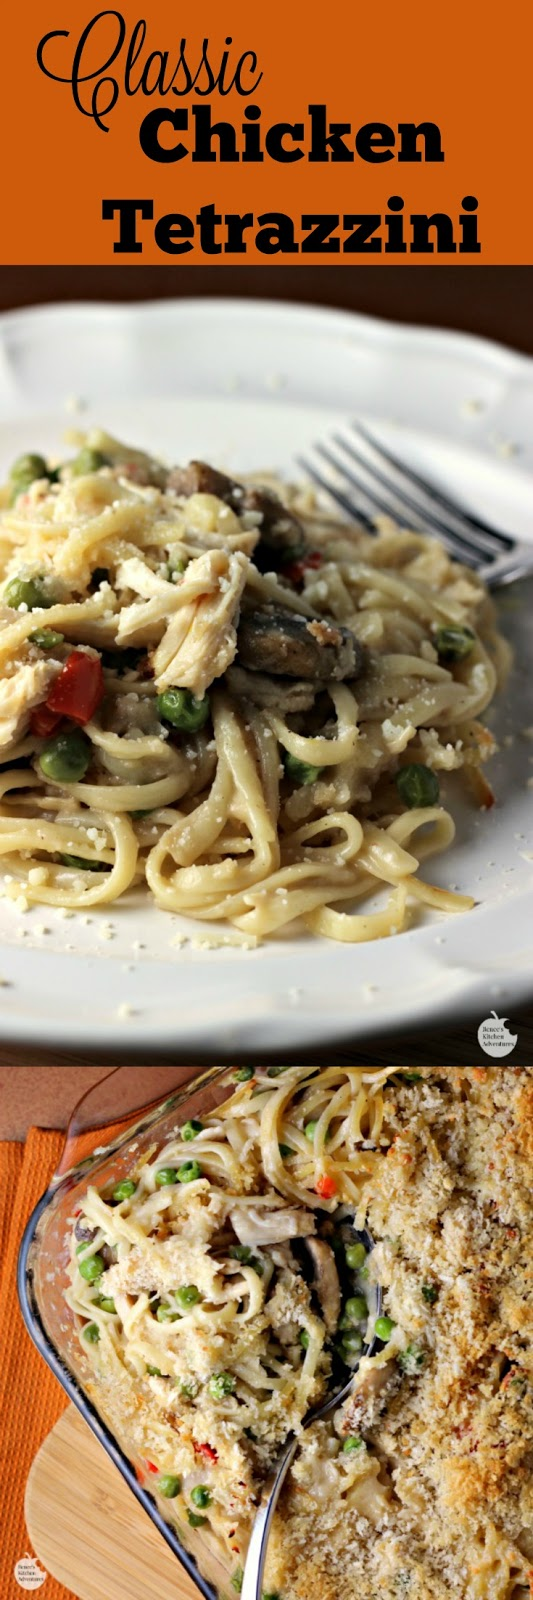 Classic Chicken Tetrazzini | by Renee's Kitchen Adventures - Easy recipe for a budget-friendly dinner that is a great way to use up holiday leftovers!